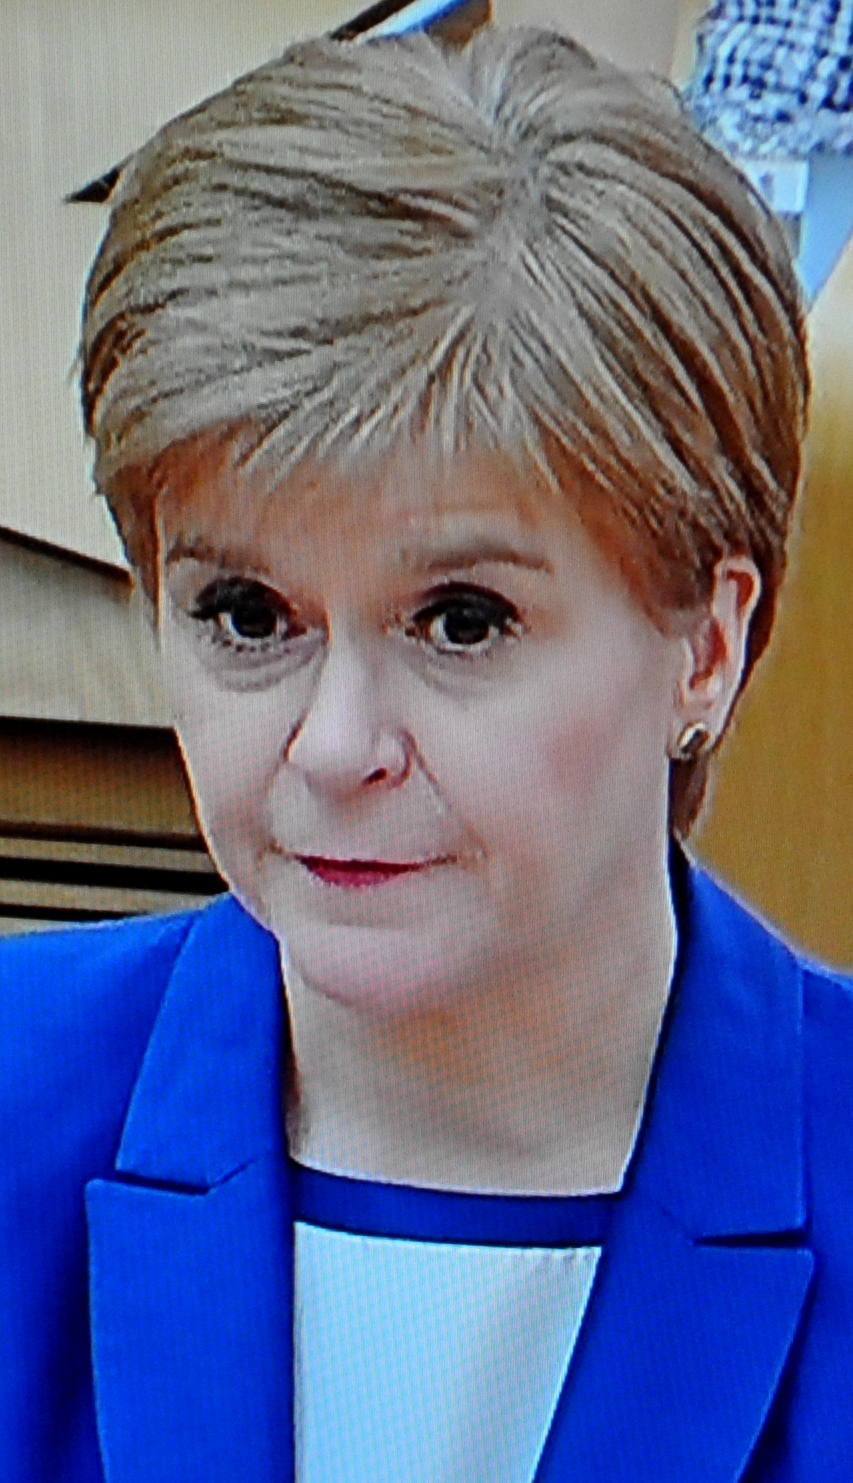 HAIR, HAIR. RAISE YOUR GLASS TO NICOLA AND PRAY FOR SUCCESSFUL LOCKDOWN LIFTING